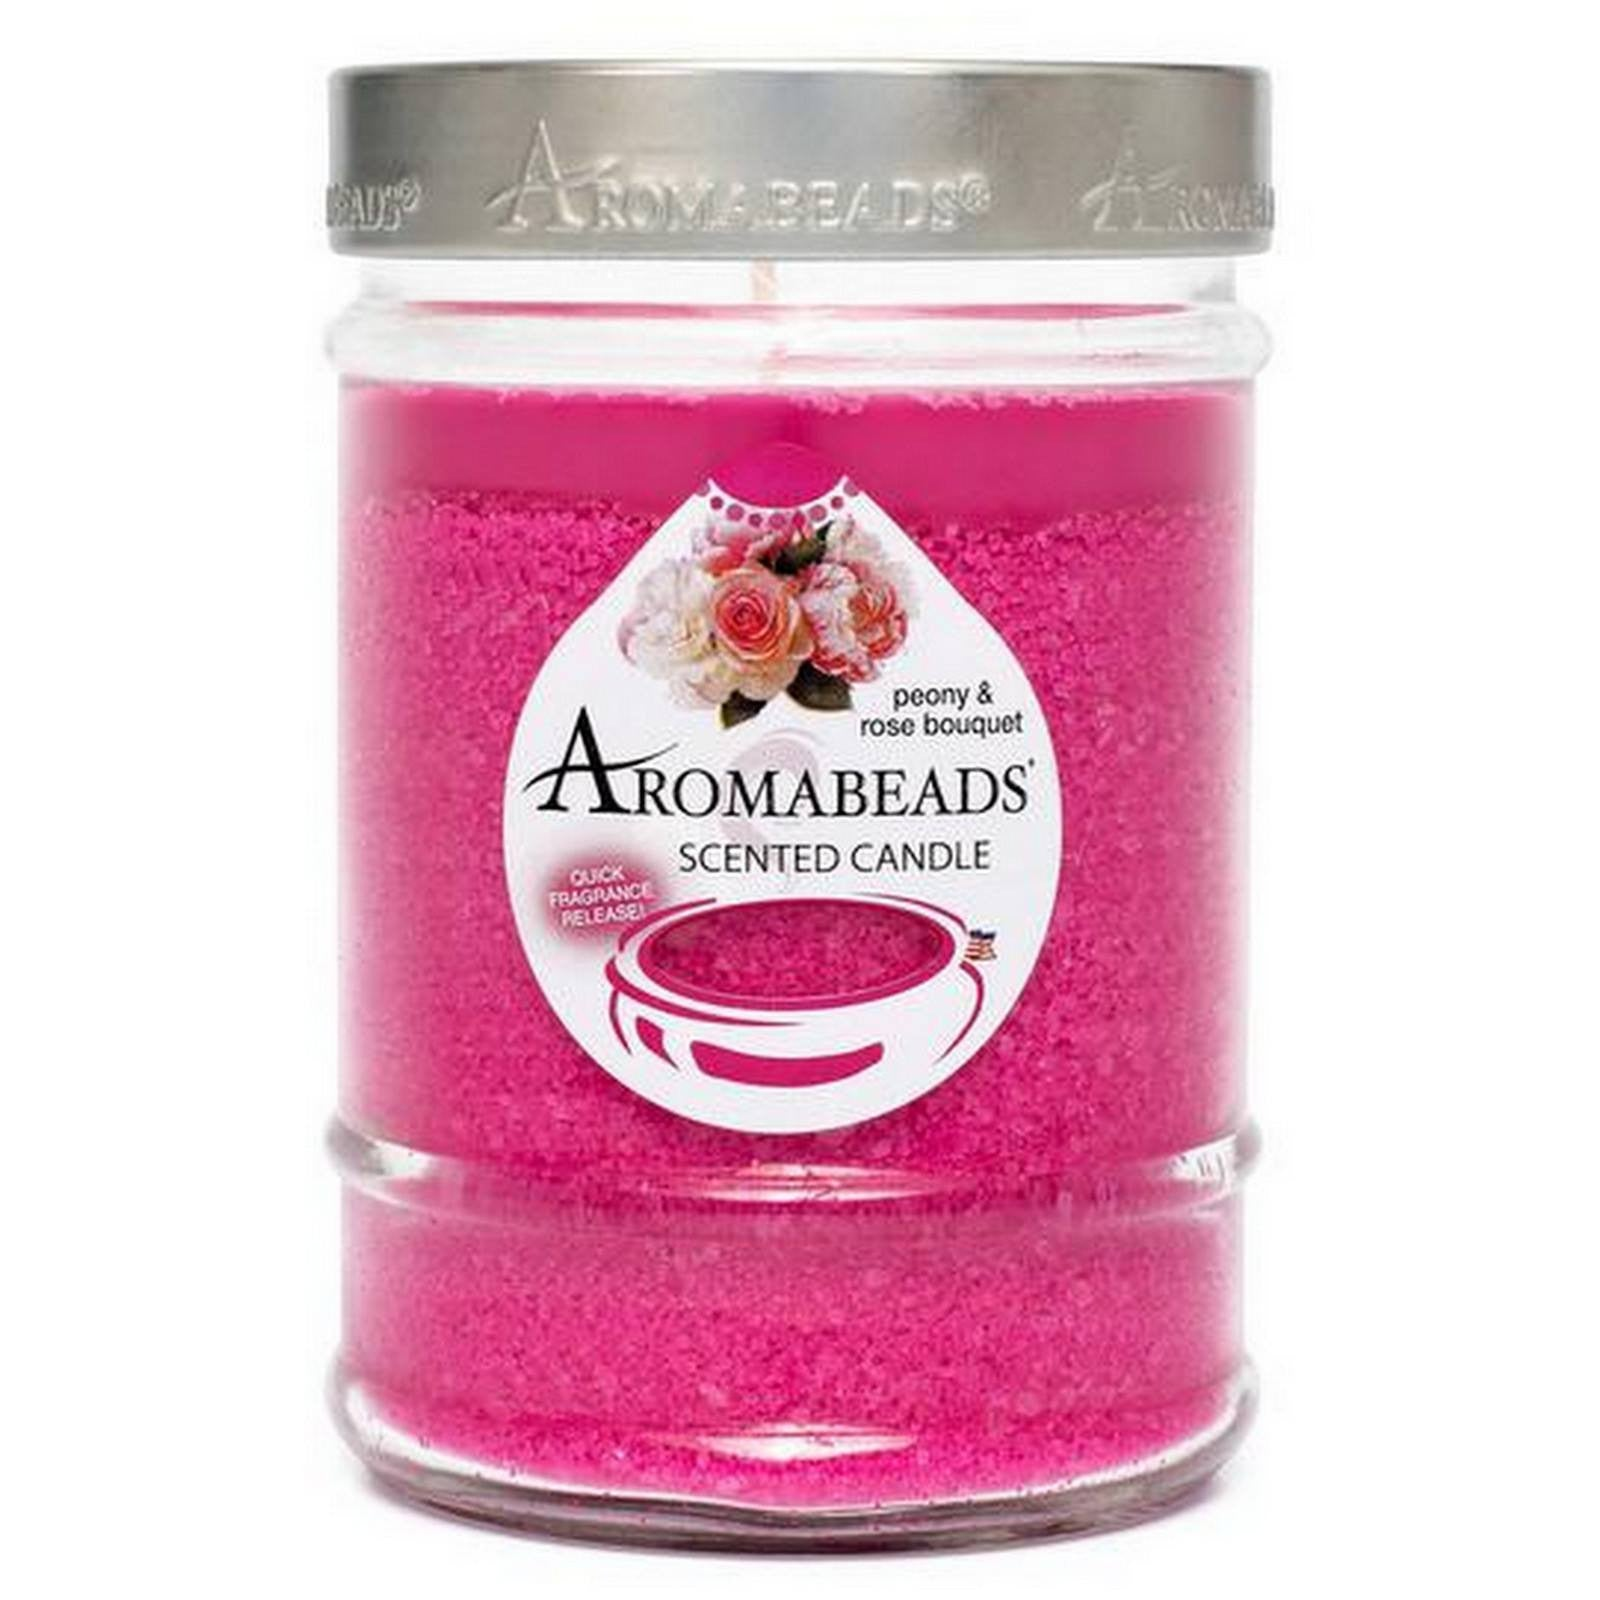 Aromabeads Peony Rose Bouquet Scented Canister Candle - Candlemart.com